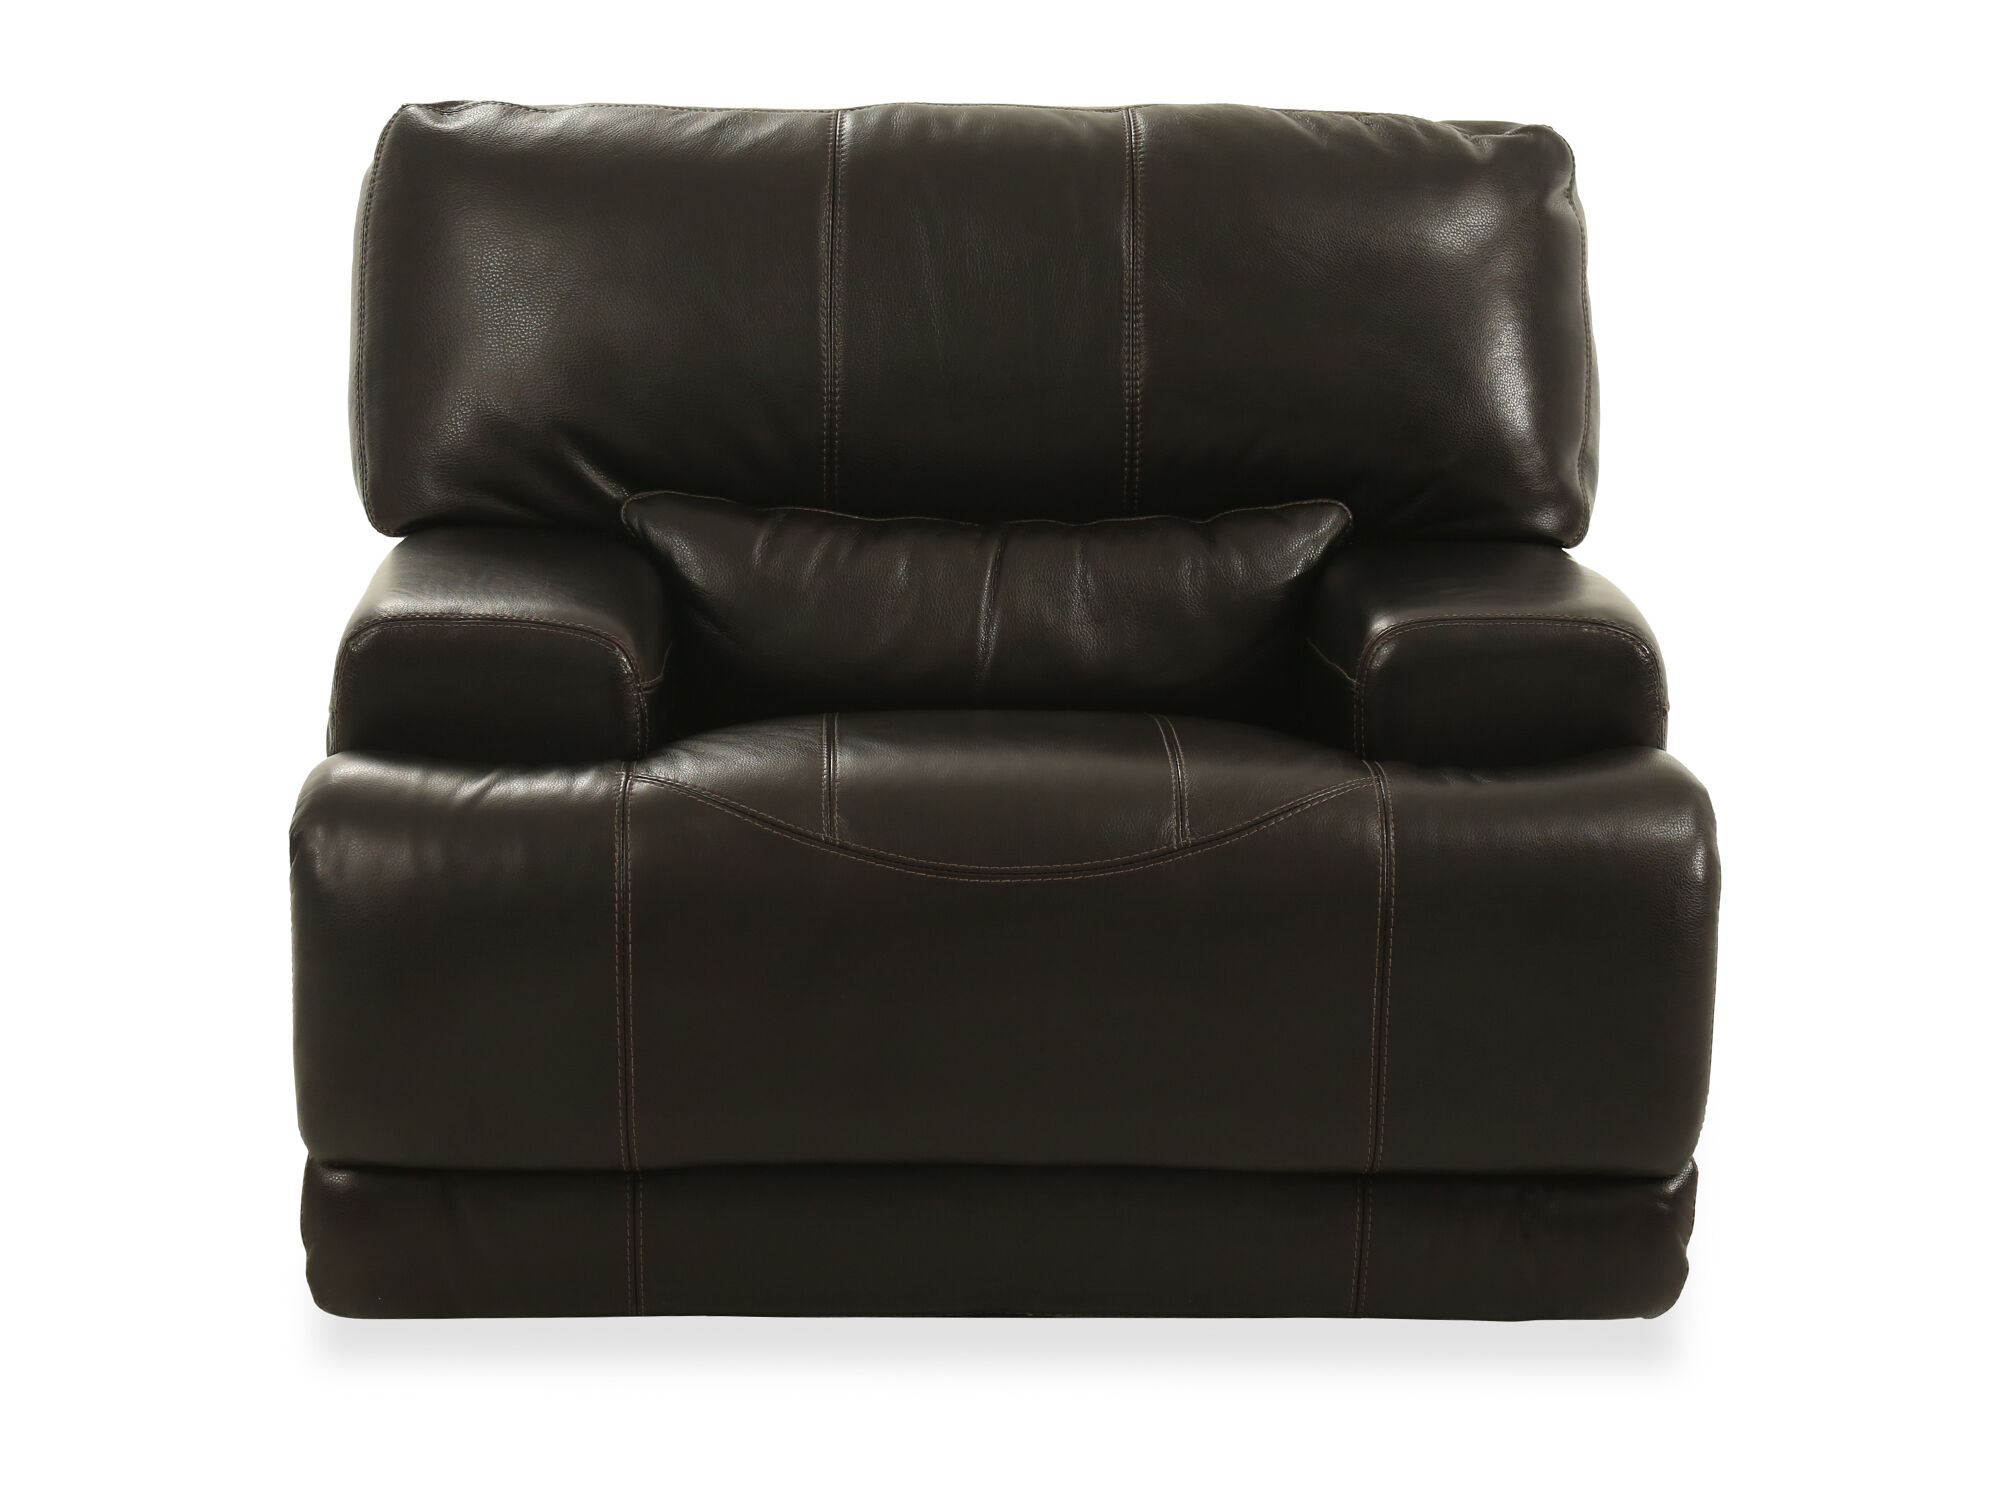 Good Traditional 39u0026quot; Leather Recliner ...